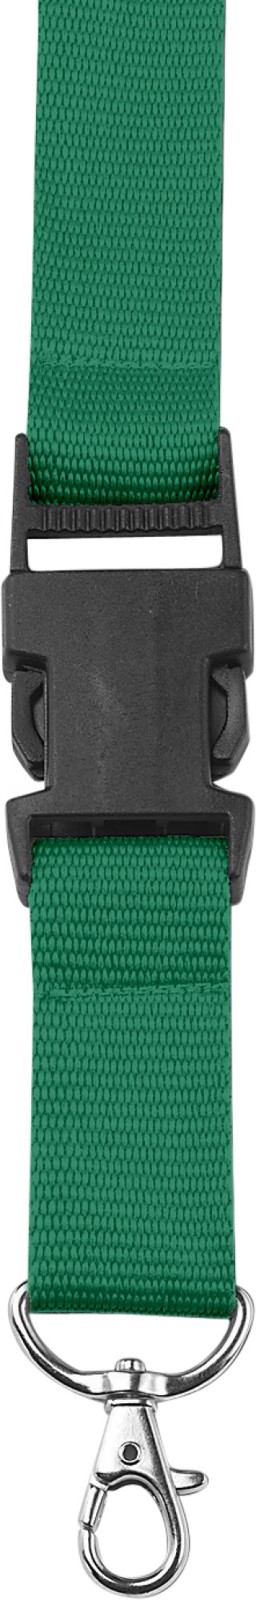 Polyester (300D) lanyard and key holder - Green